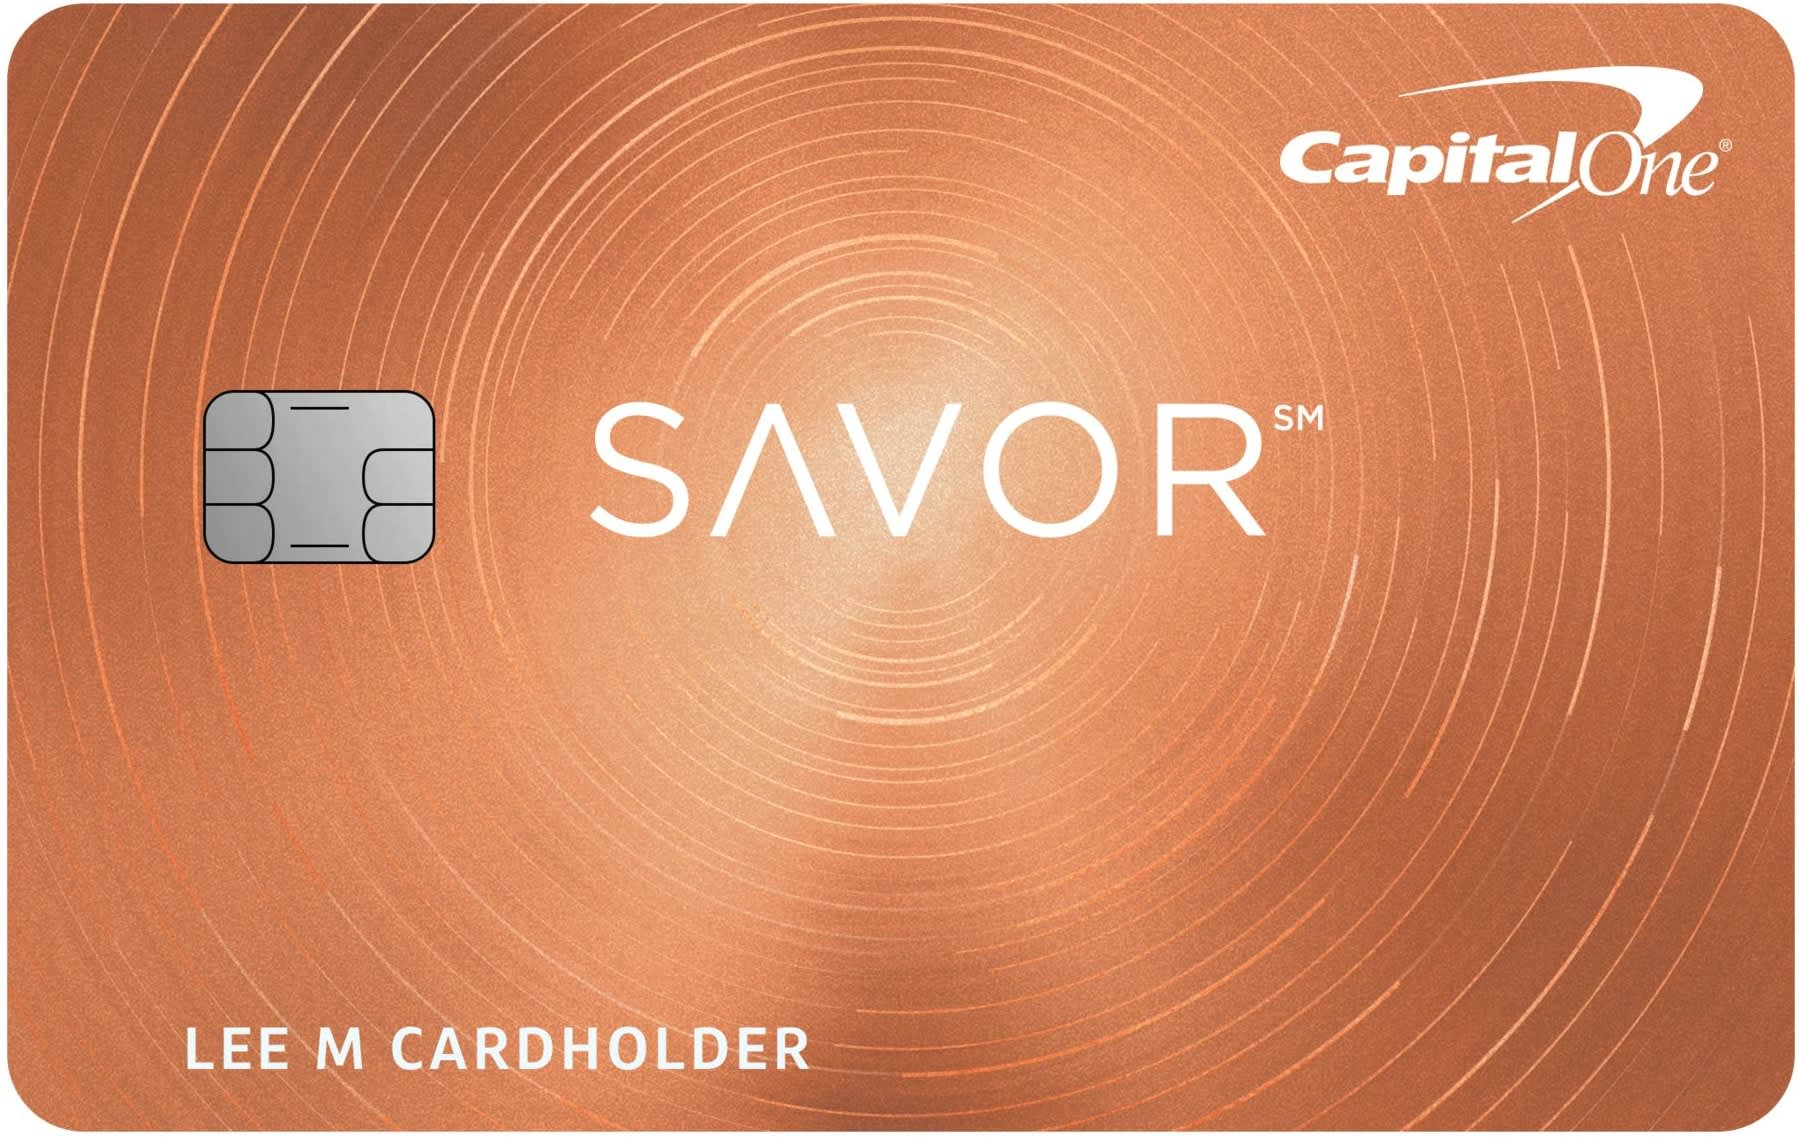 Credit card: Capital One Savor (New)